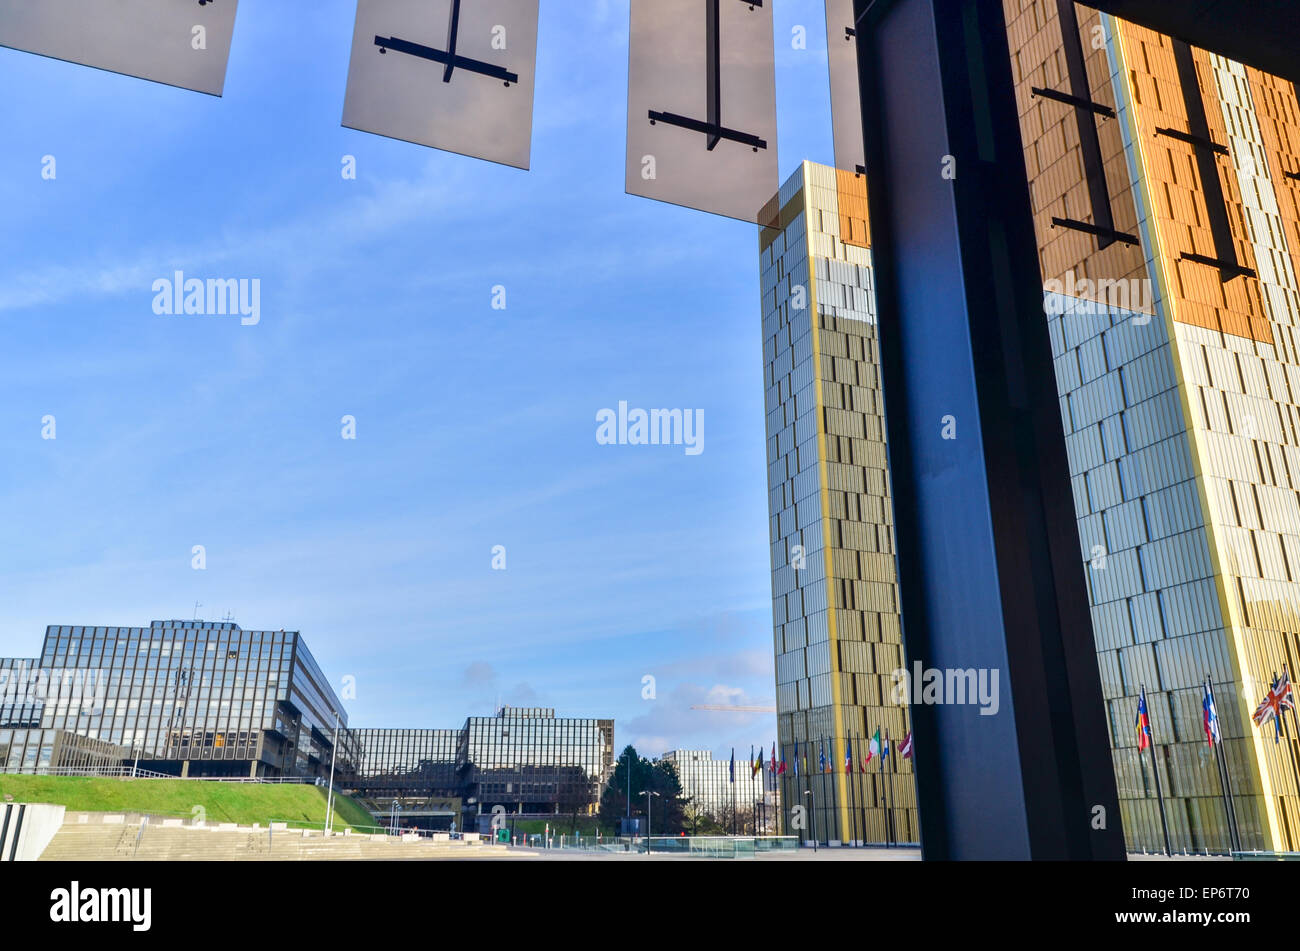 Golden twin towers and European Commission seen from the Court of Justice of the European Union, in Kirchberg, Luxembourg Stock Photo